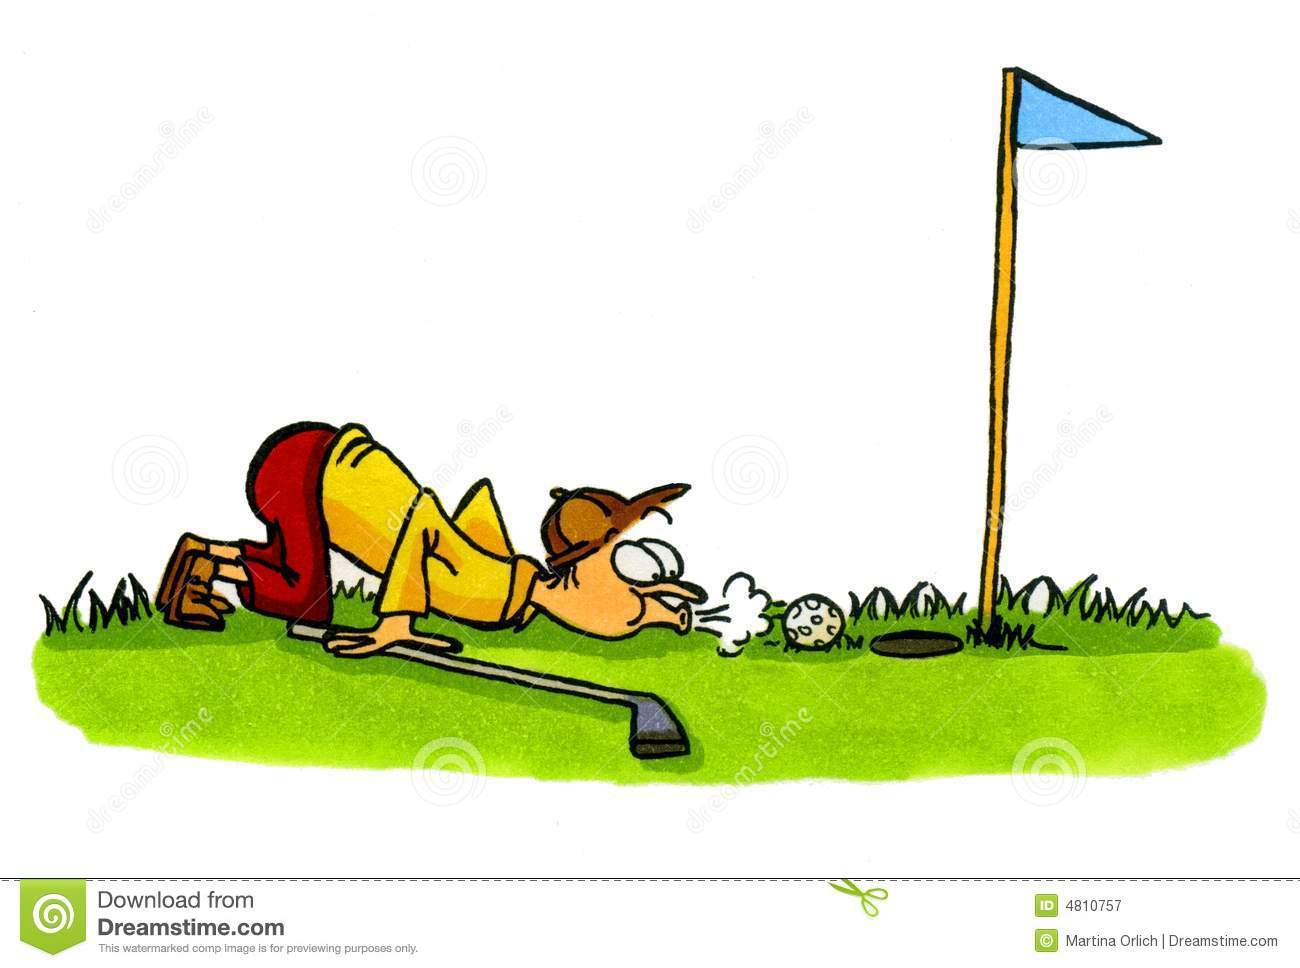 Free golf cartoons clipart graphic freeuse stock Free golf clipart cartoons 1 » Clipart Portal graphic freeuse stock